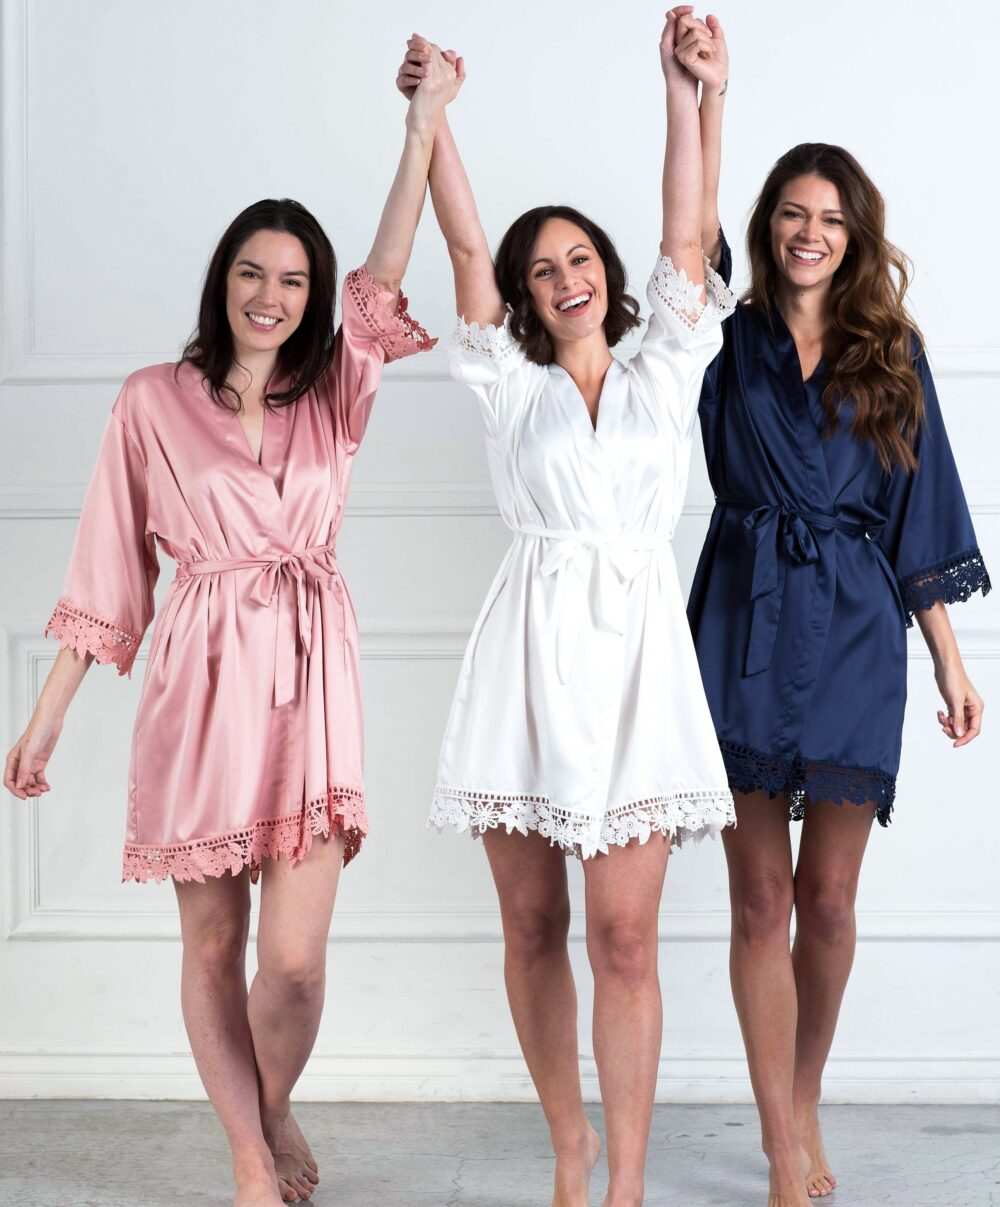 Lace Trimmed Satin Wedding Party Robes | Bridal Lace-Trimmed Robe Bridesmaid